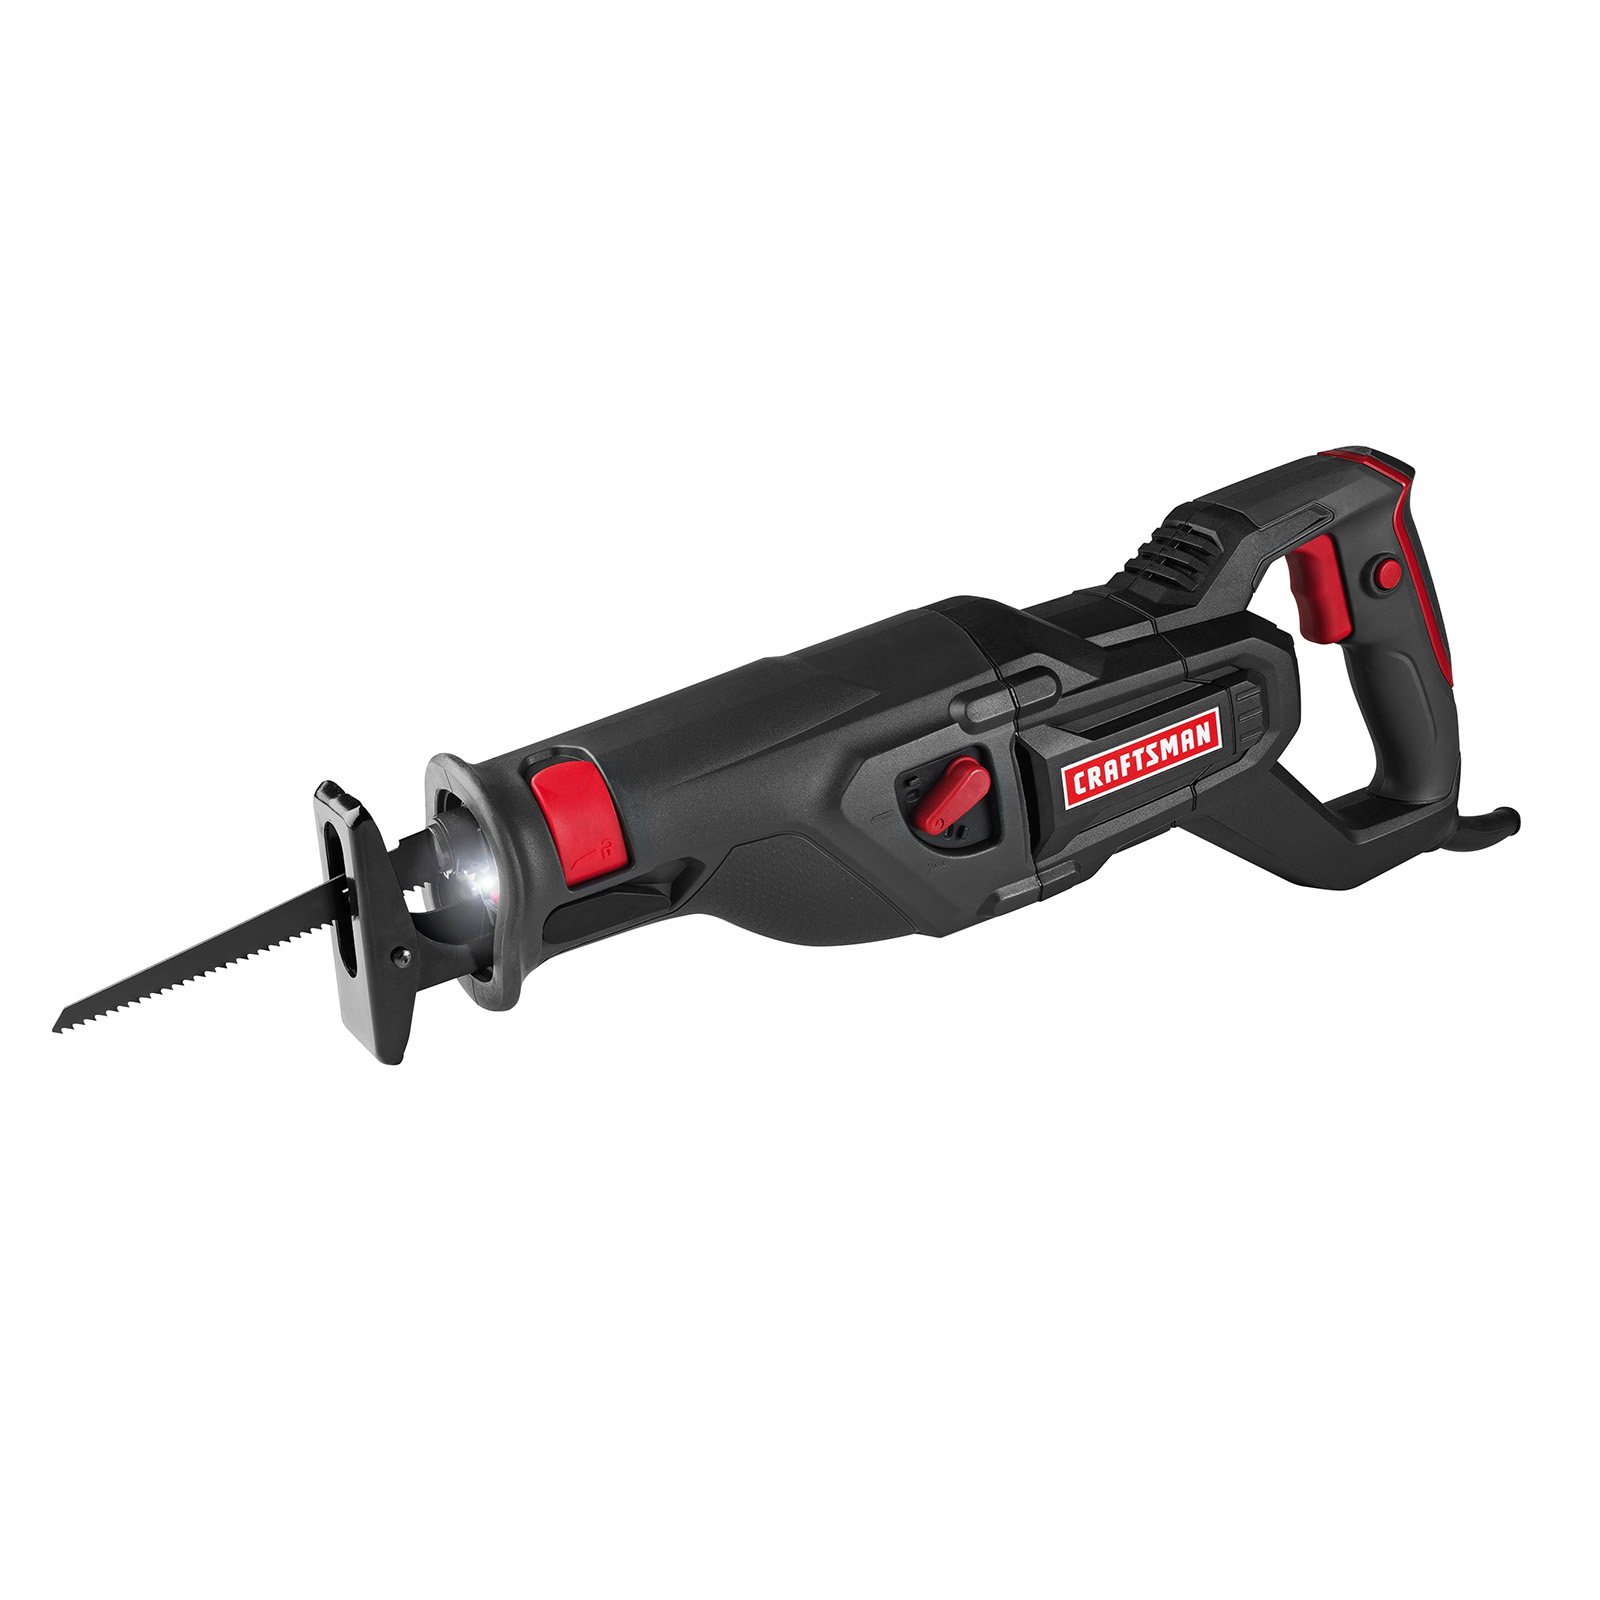 Craftsman 10 Amp Corded Orbital Reciprocating Saw